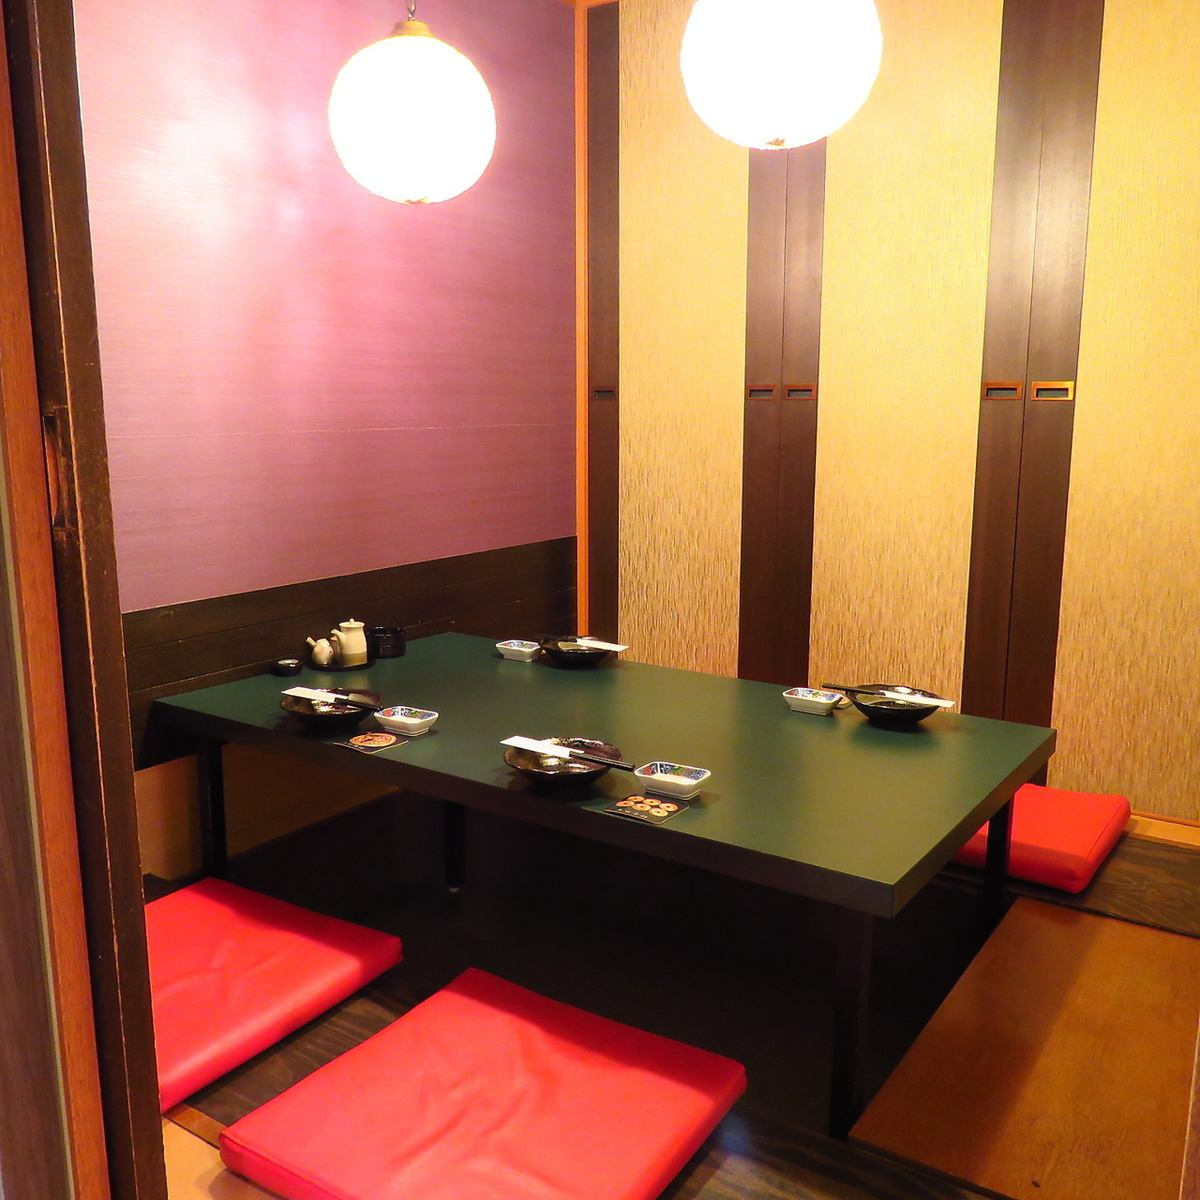 Open until 27 o'clock! You can relax and enjoy it even in late evening in a fully-private room.